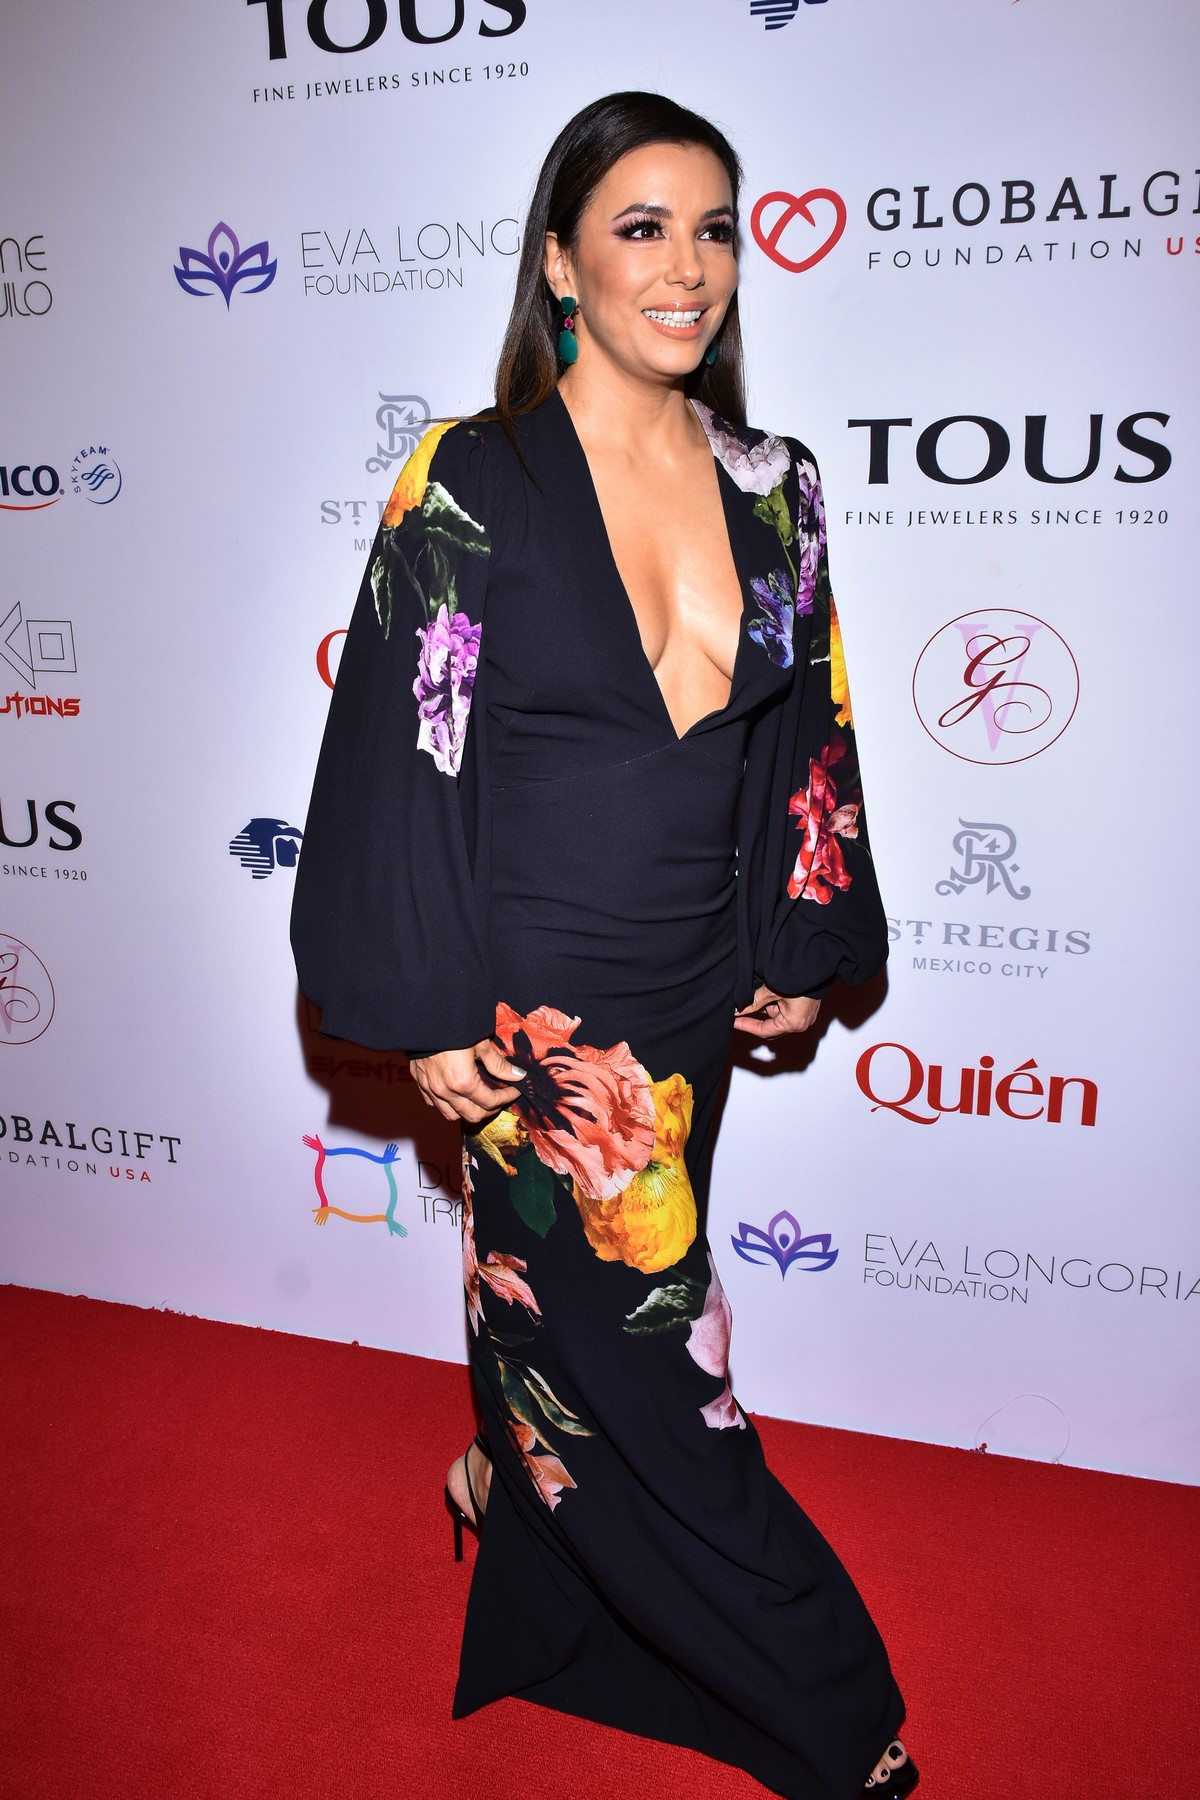 Eva Longoria attends 5th Global Gift Foundation Gala in Mexico City 2019/11/19 7